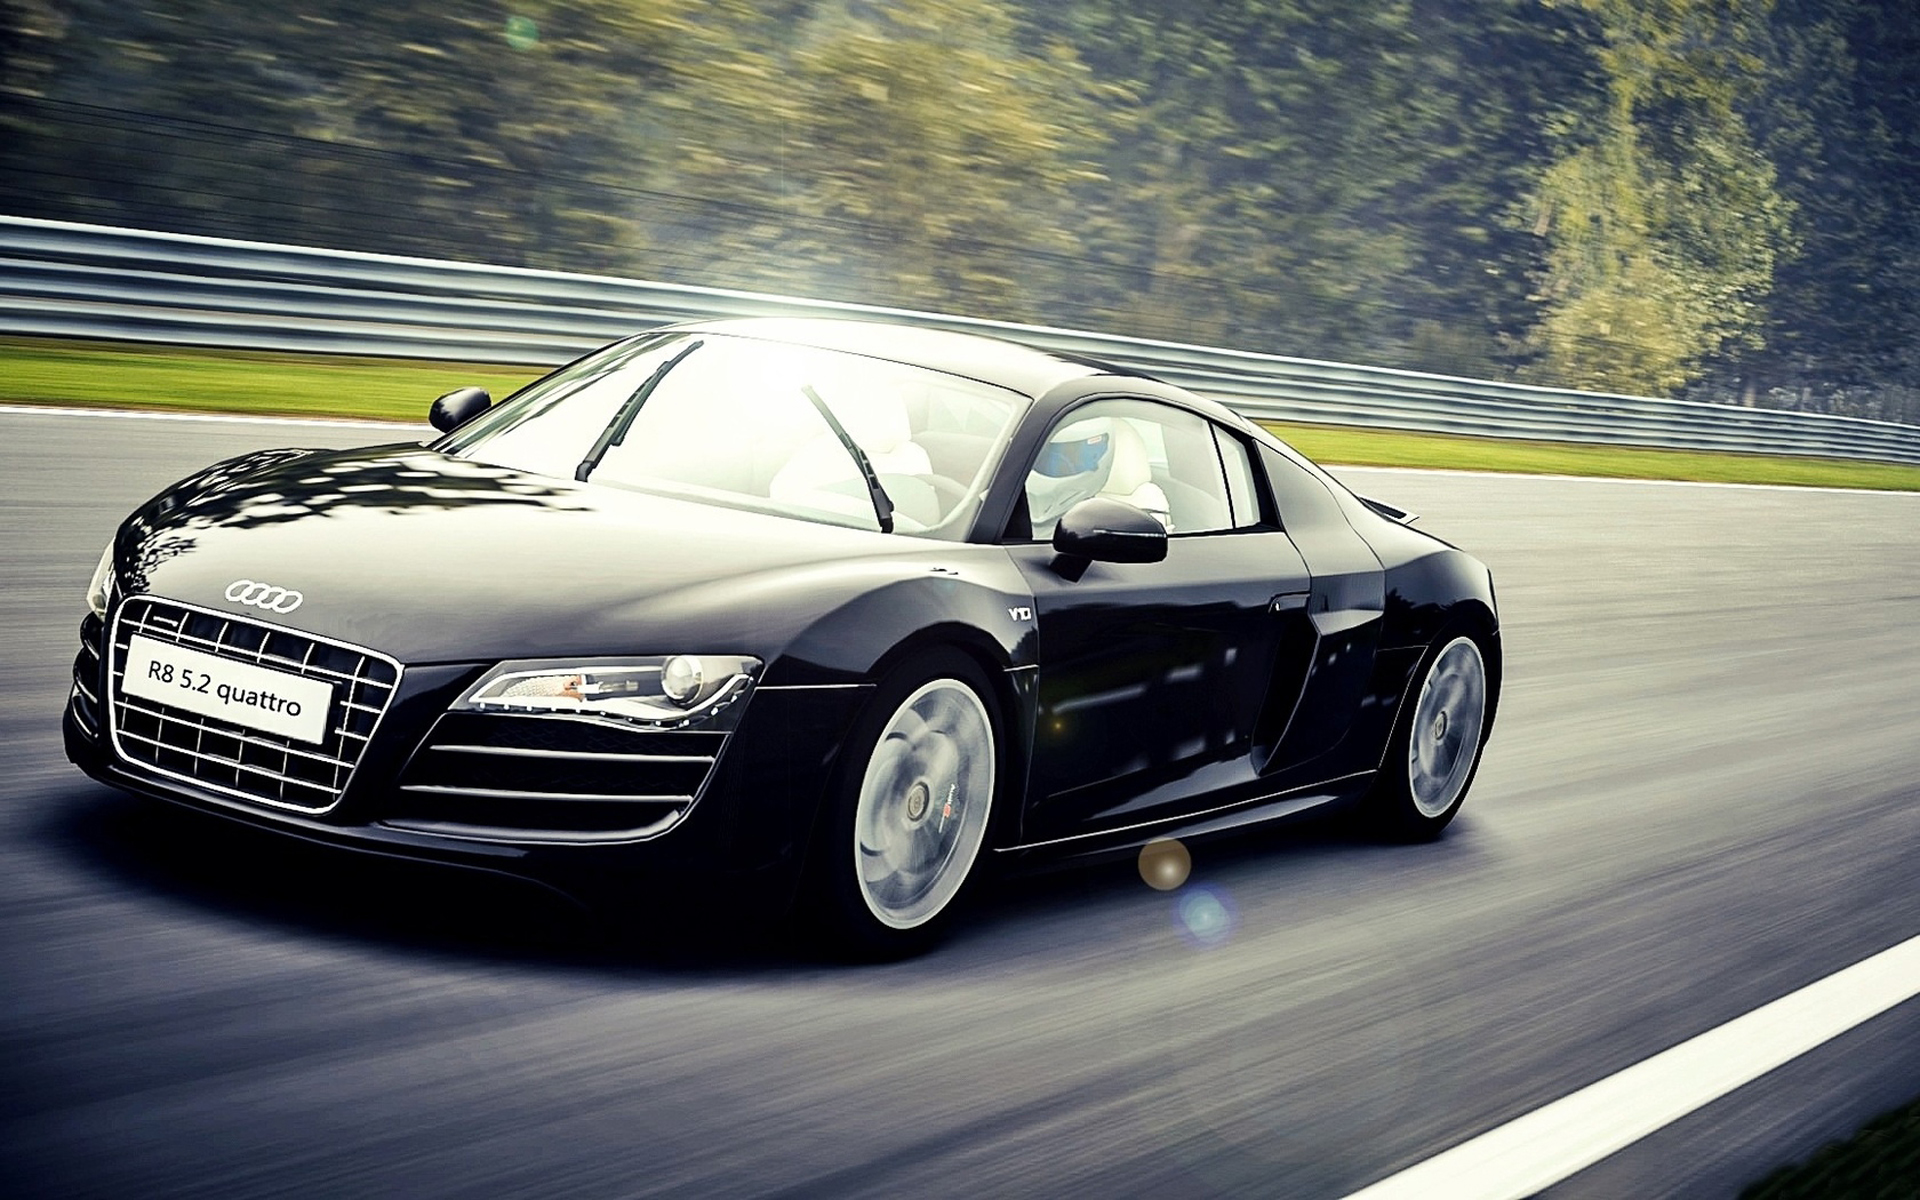 Audi R8 Cars Wallpapers Hd Audi R8 Wallpapers Pictures Images